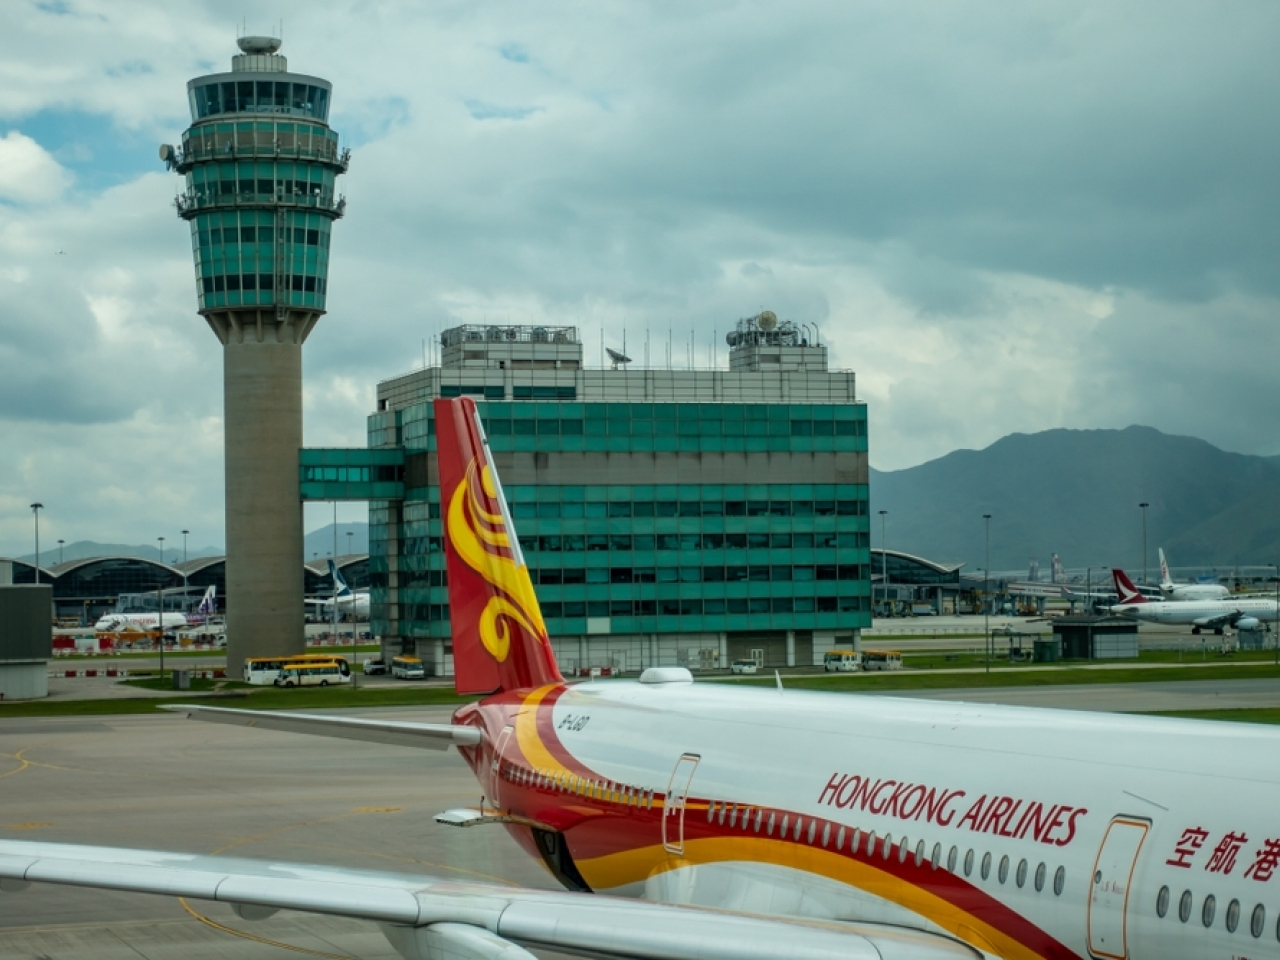 A Hong Kong Airlines jet at the airport. The airline will operate a reduced fleet for the year ahead. Image: Shutterstock